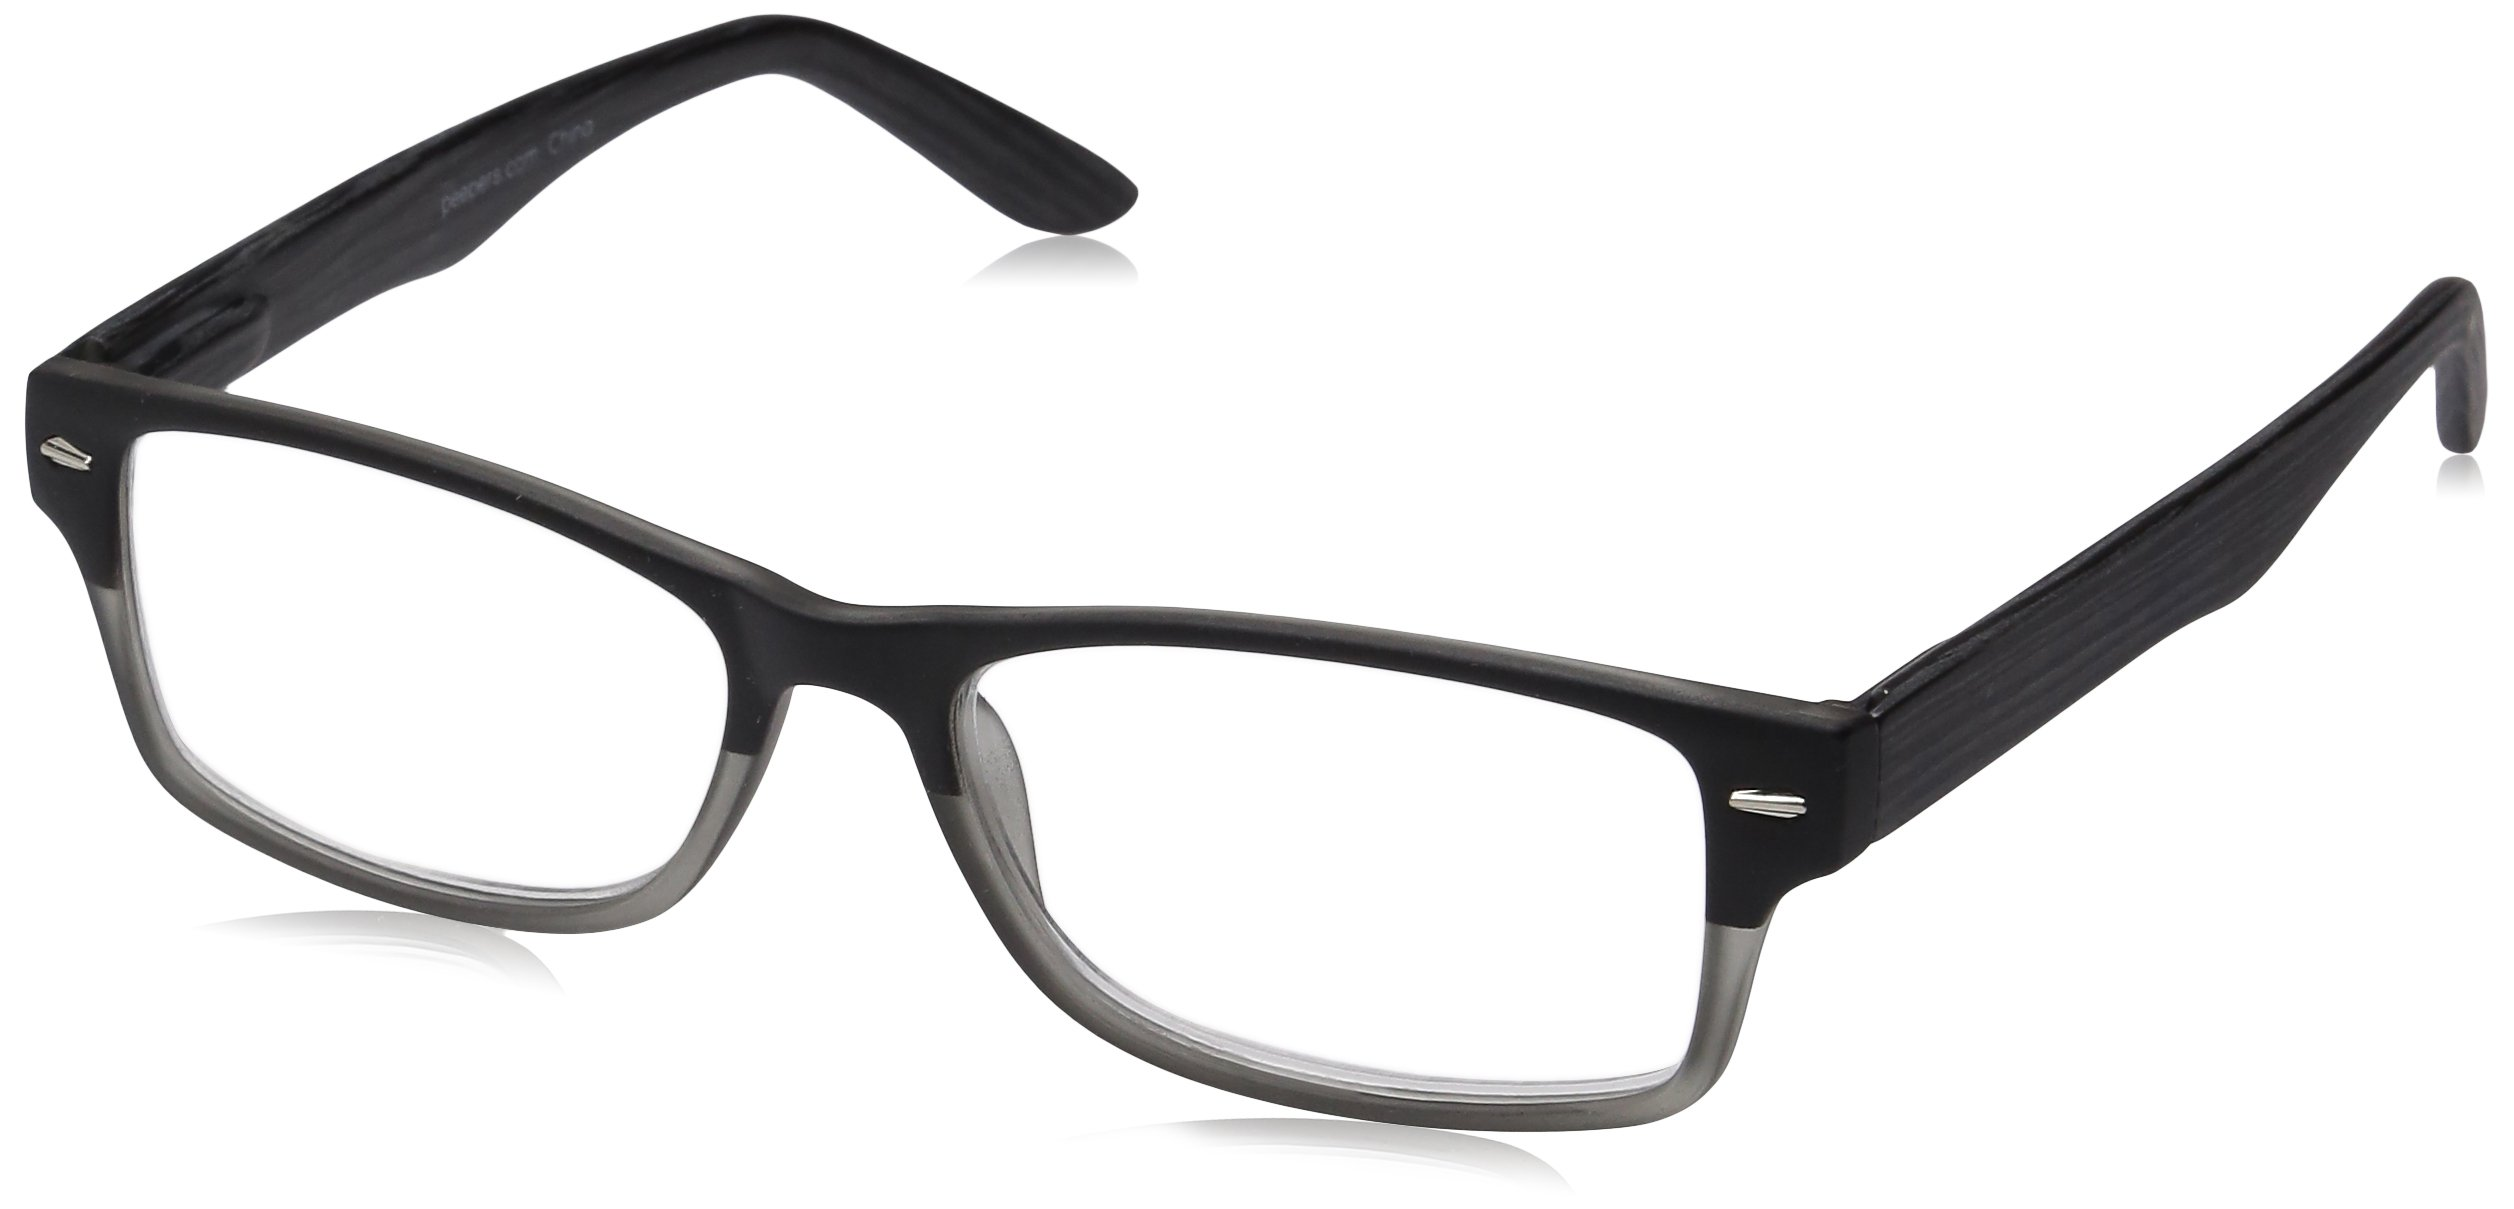 Peepers Men's Page Turner Rectangular Reading Glasses by Peepers